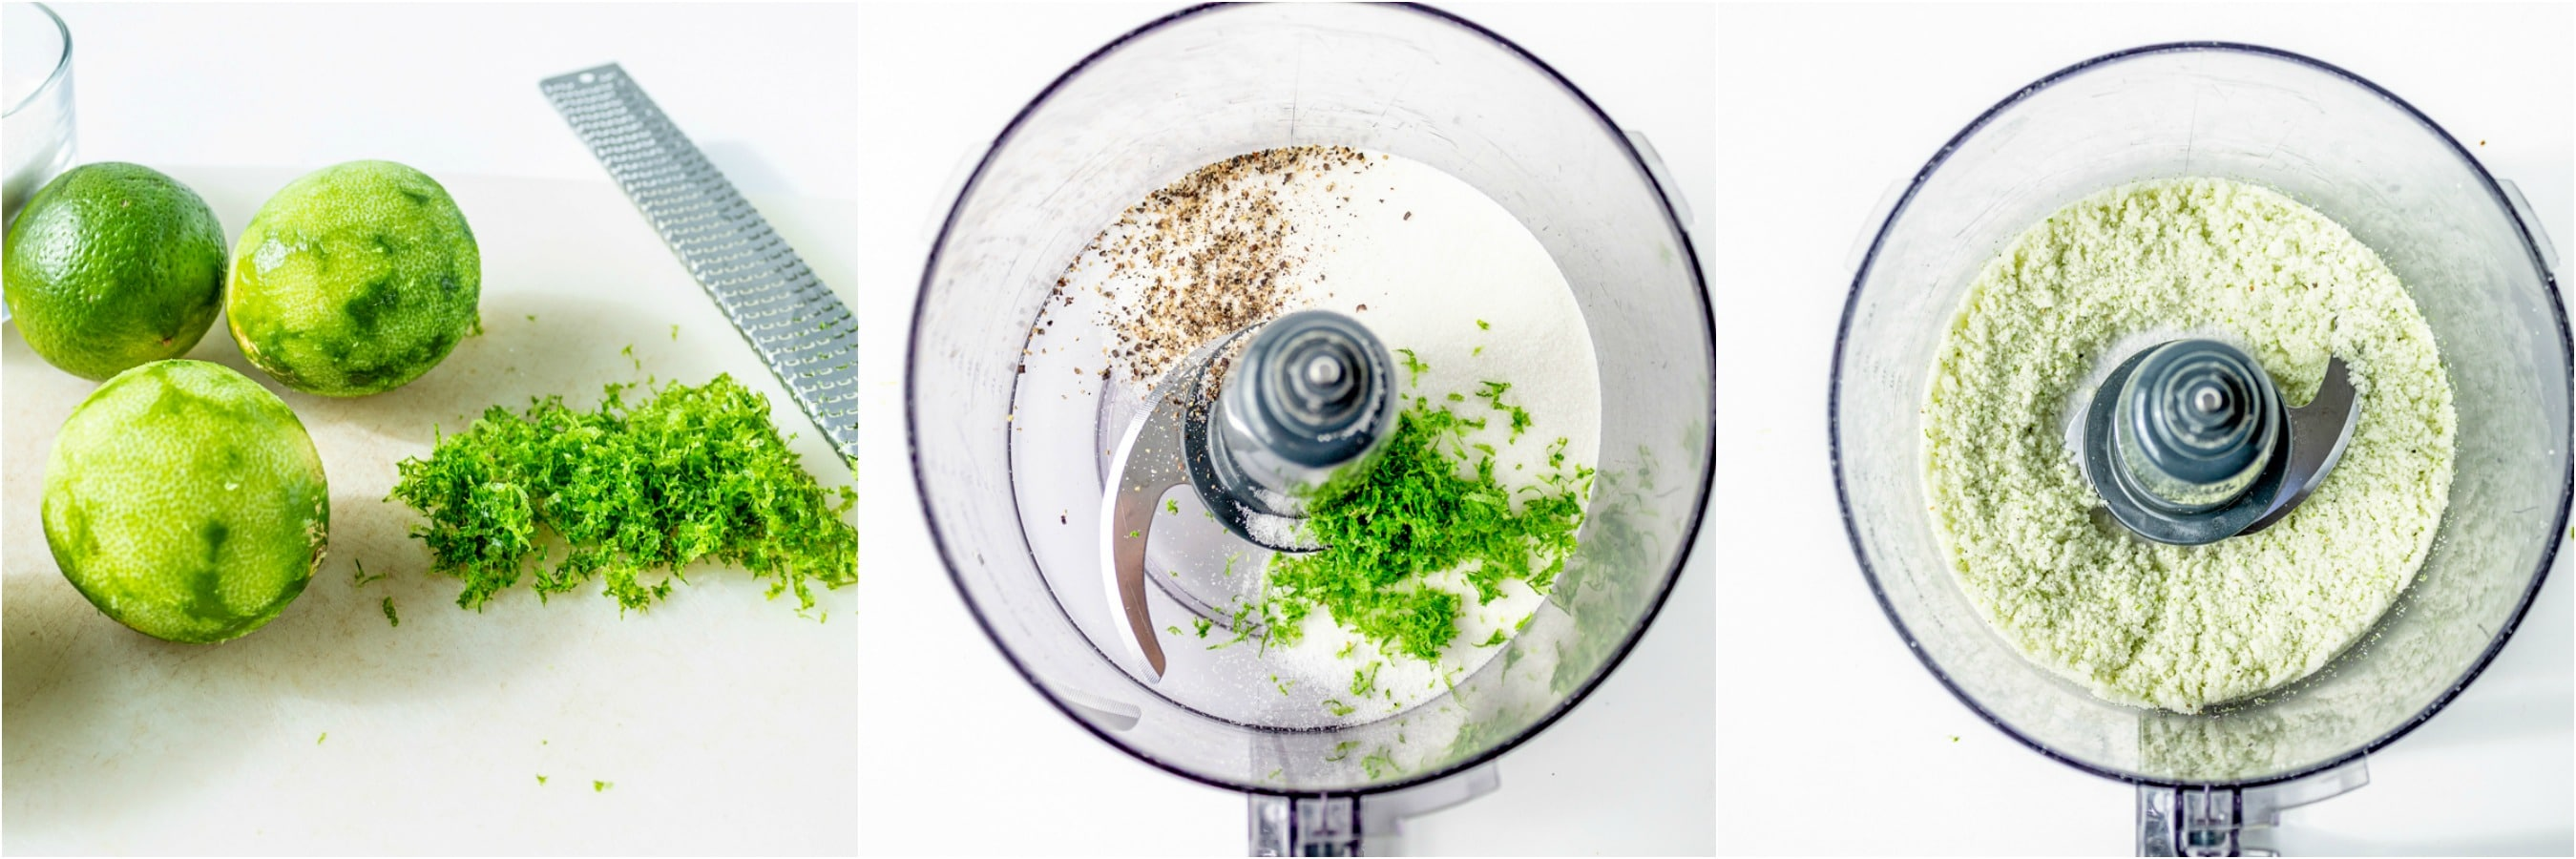 Lime zest salt and pepper in a food processor